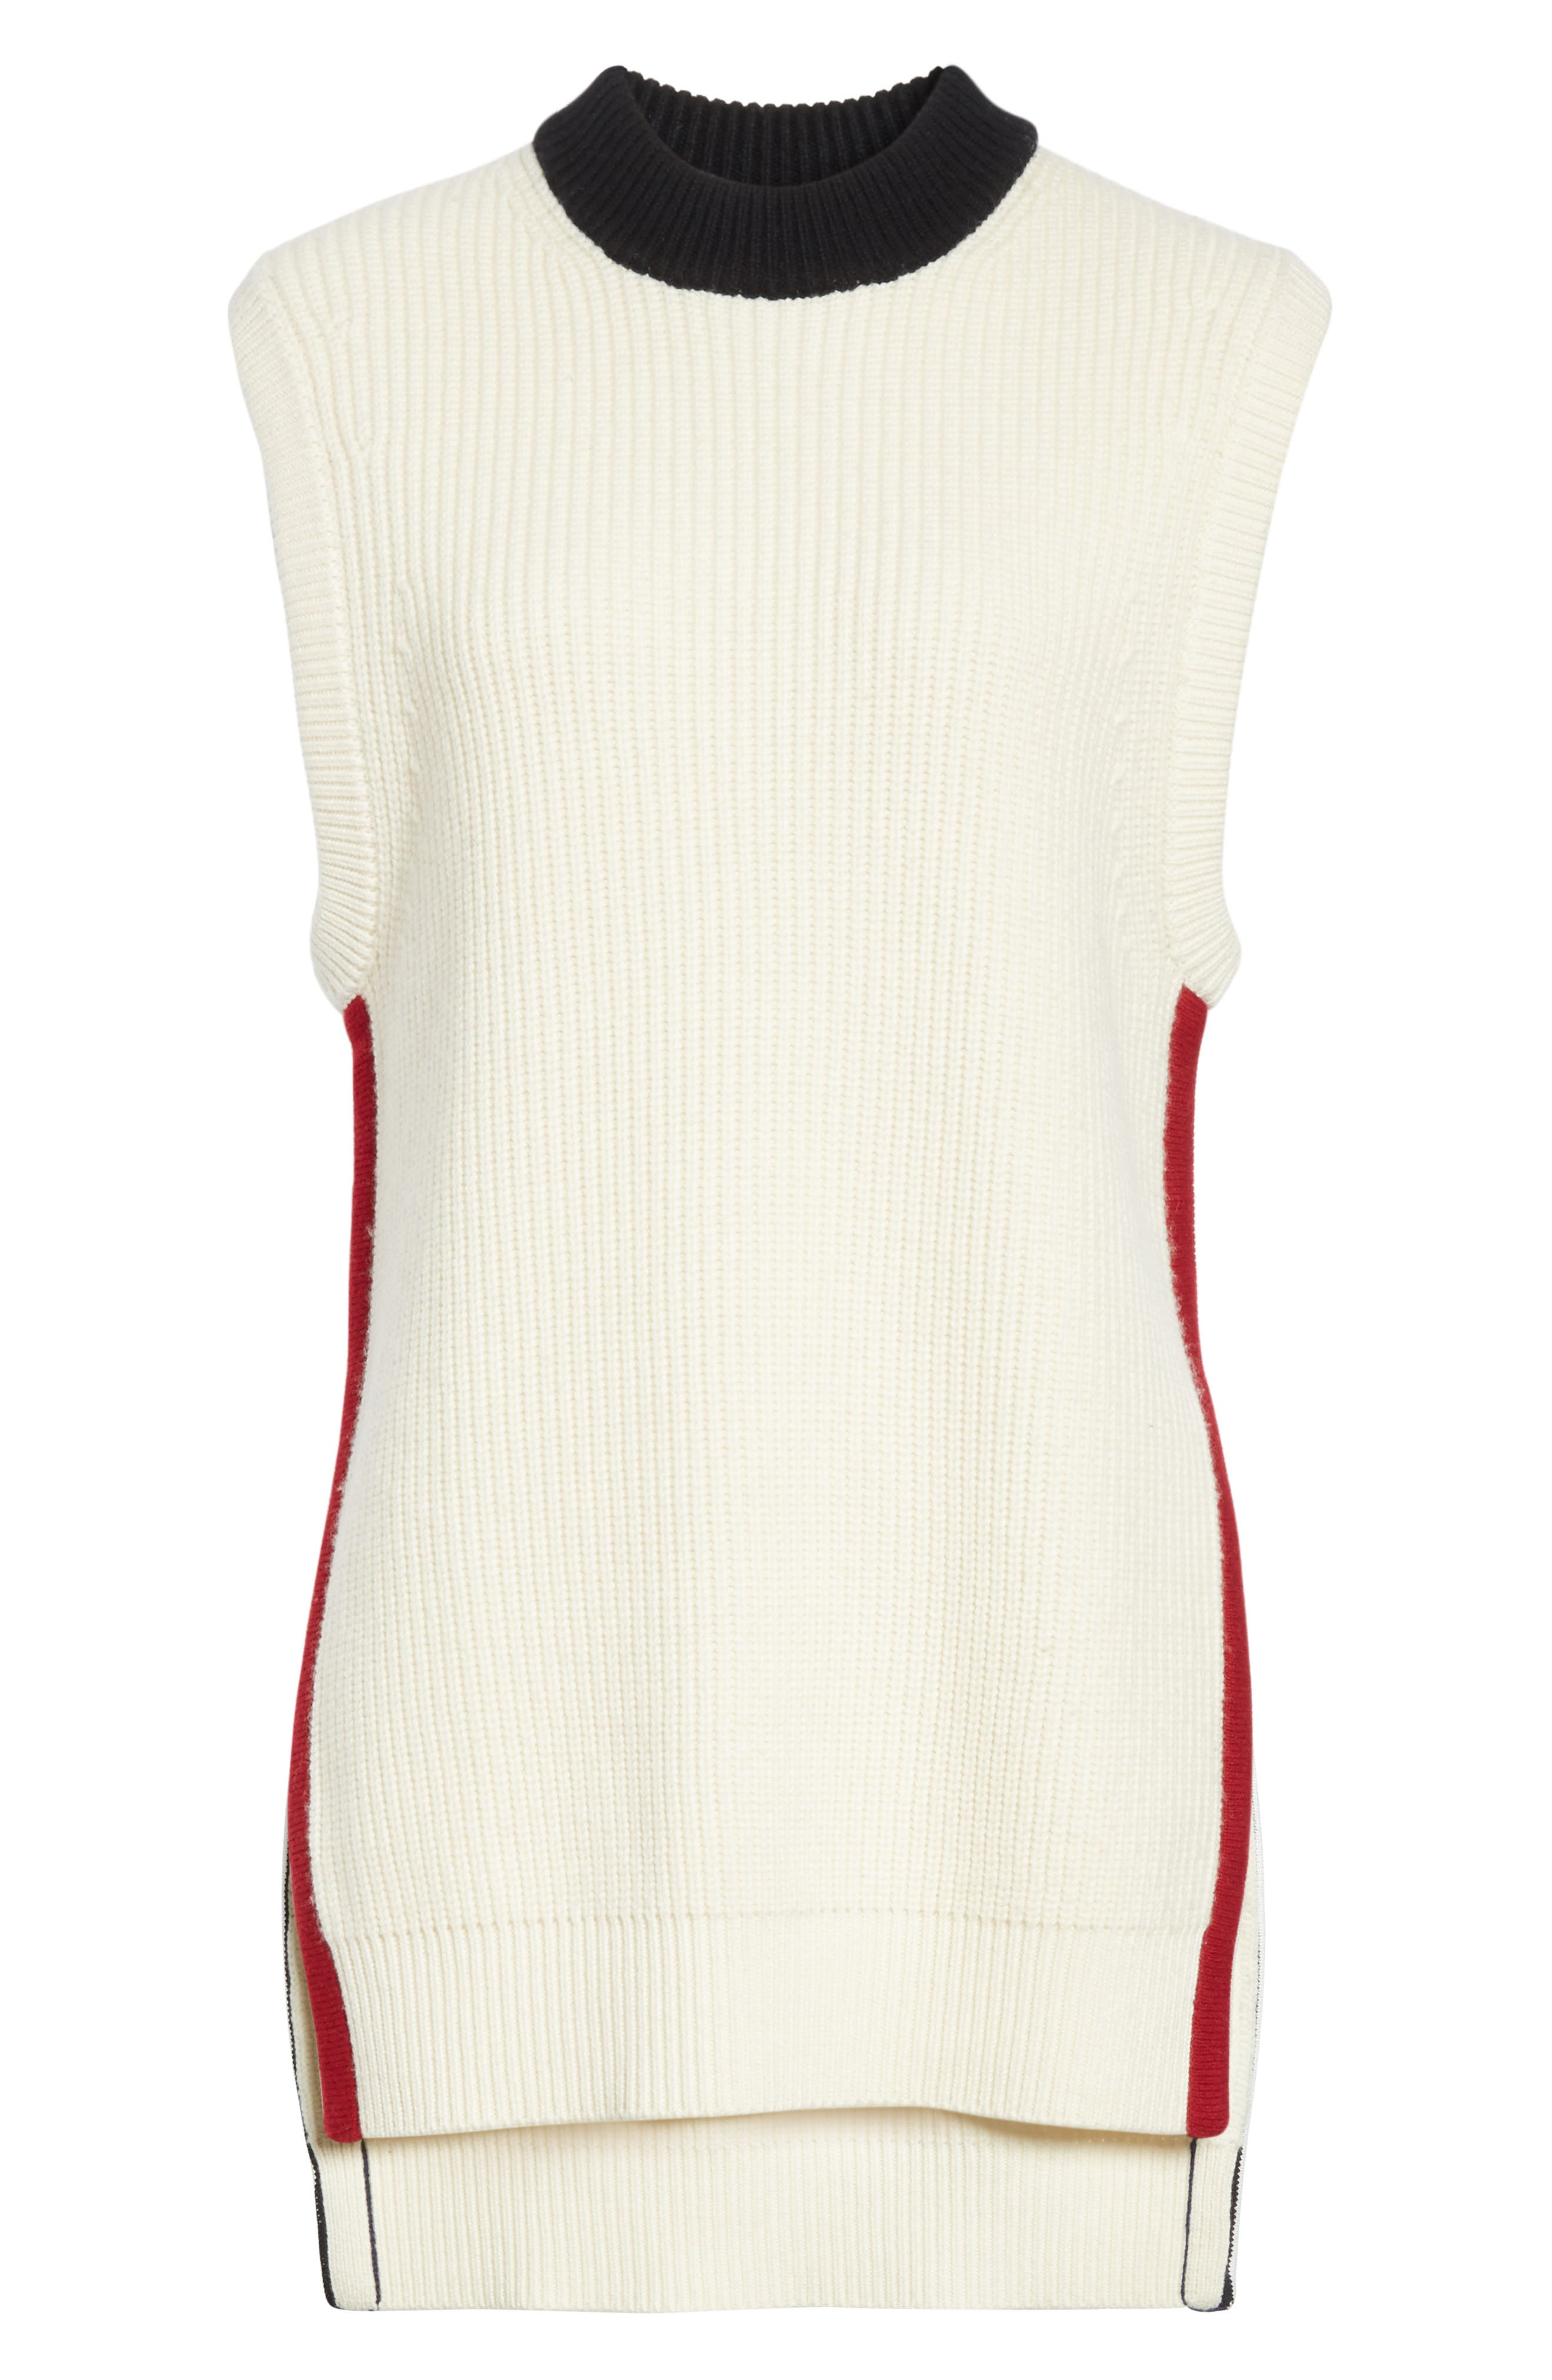 Knox 55 Wool & Cashmere Sweater,                             Alternate thumbnail 5, color,                             Natural White